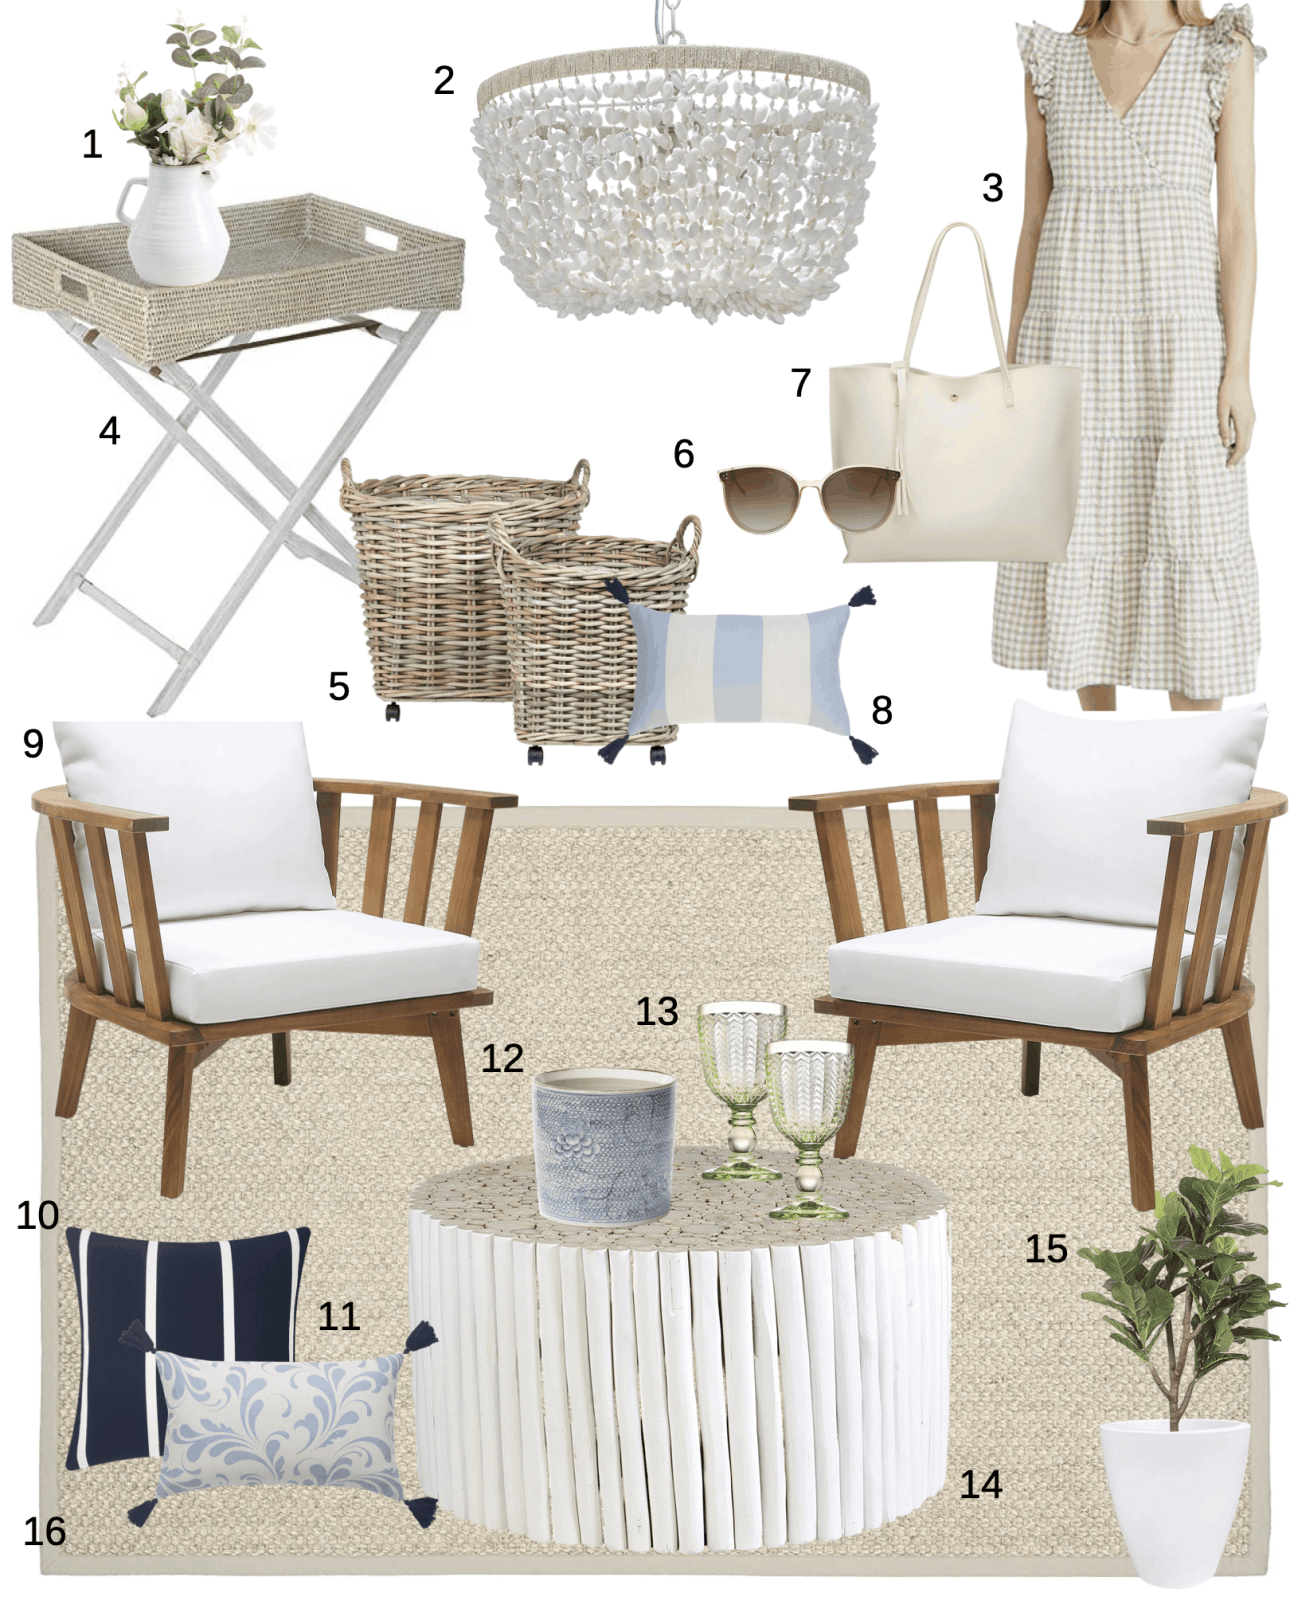 Amazon Home items for your coastal porch or sunporch.  Cute coastal home decor that looks great on a porch.  #porchdecor #coastalporch #coastal #amazonhome #amazonporch #amazonpatio #patioideas #patiodecor